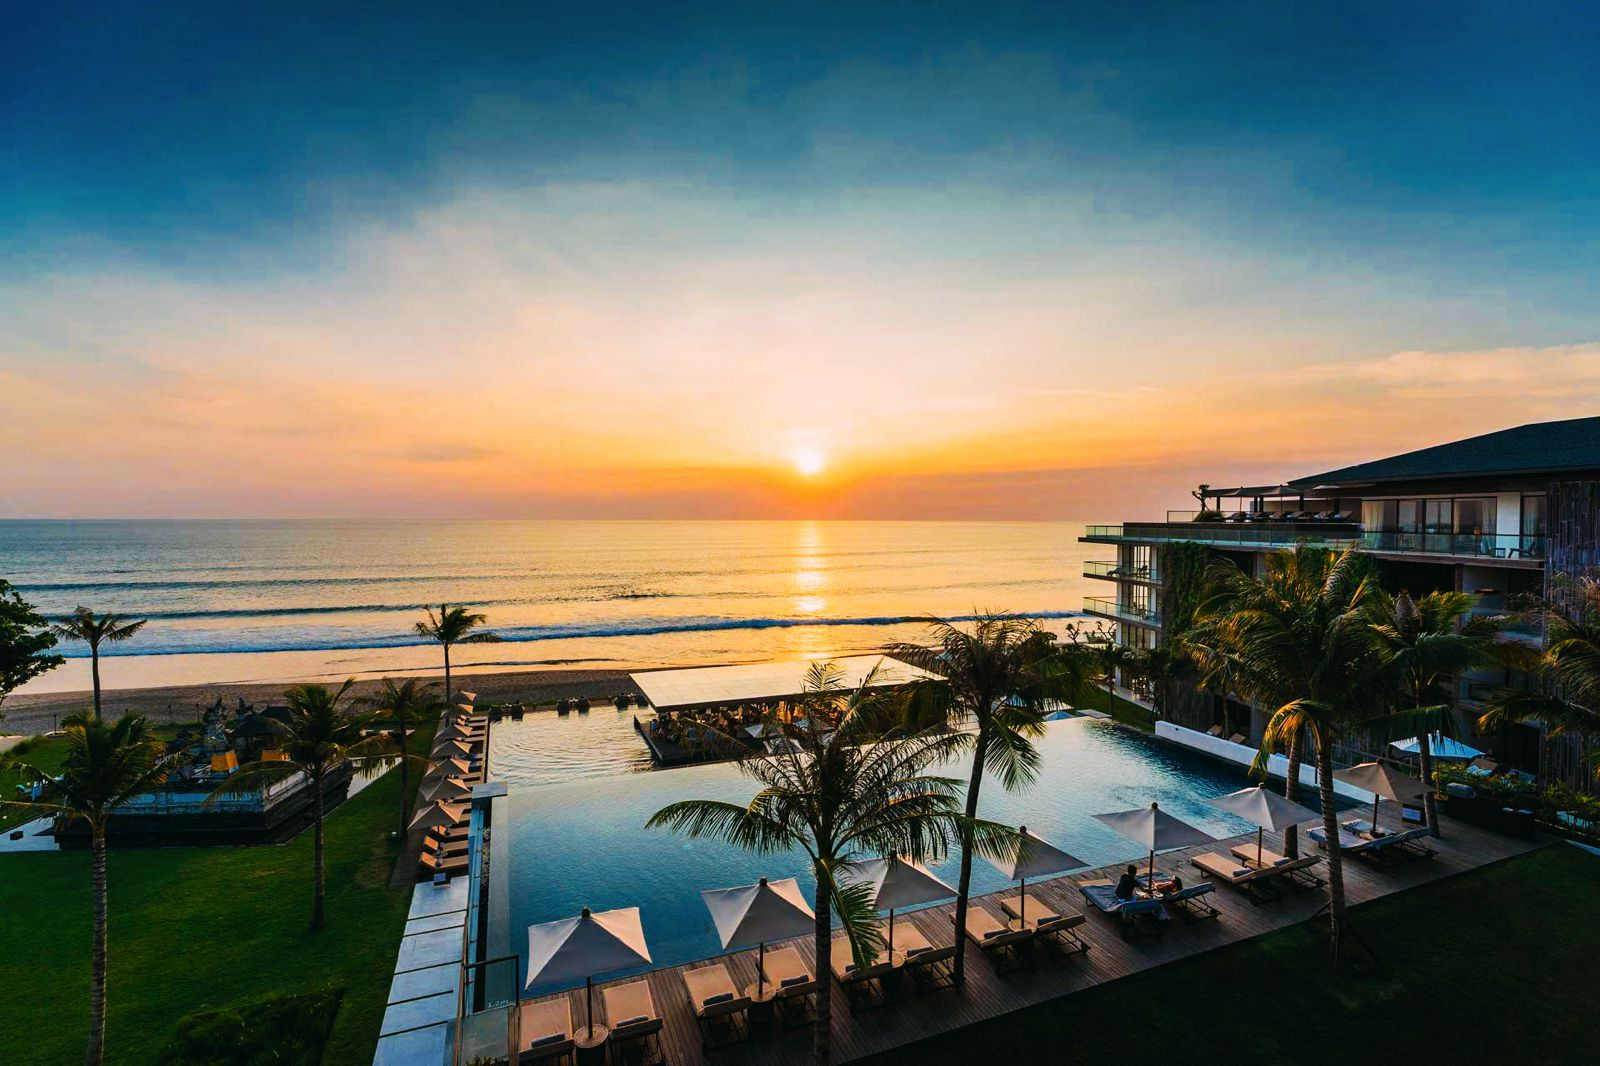 11 Amazing Things You Need To See And Do In Bali On Your First Visit (6)